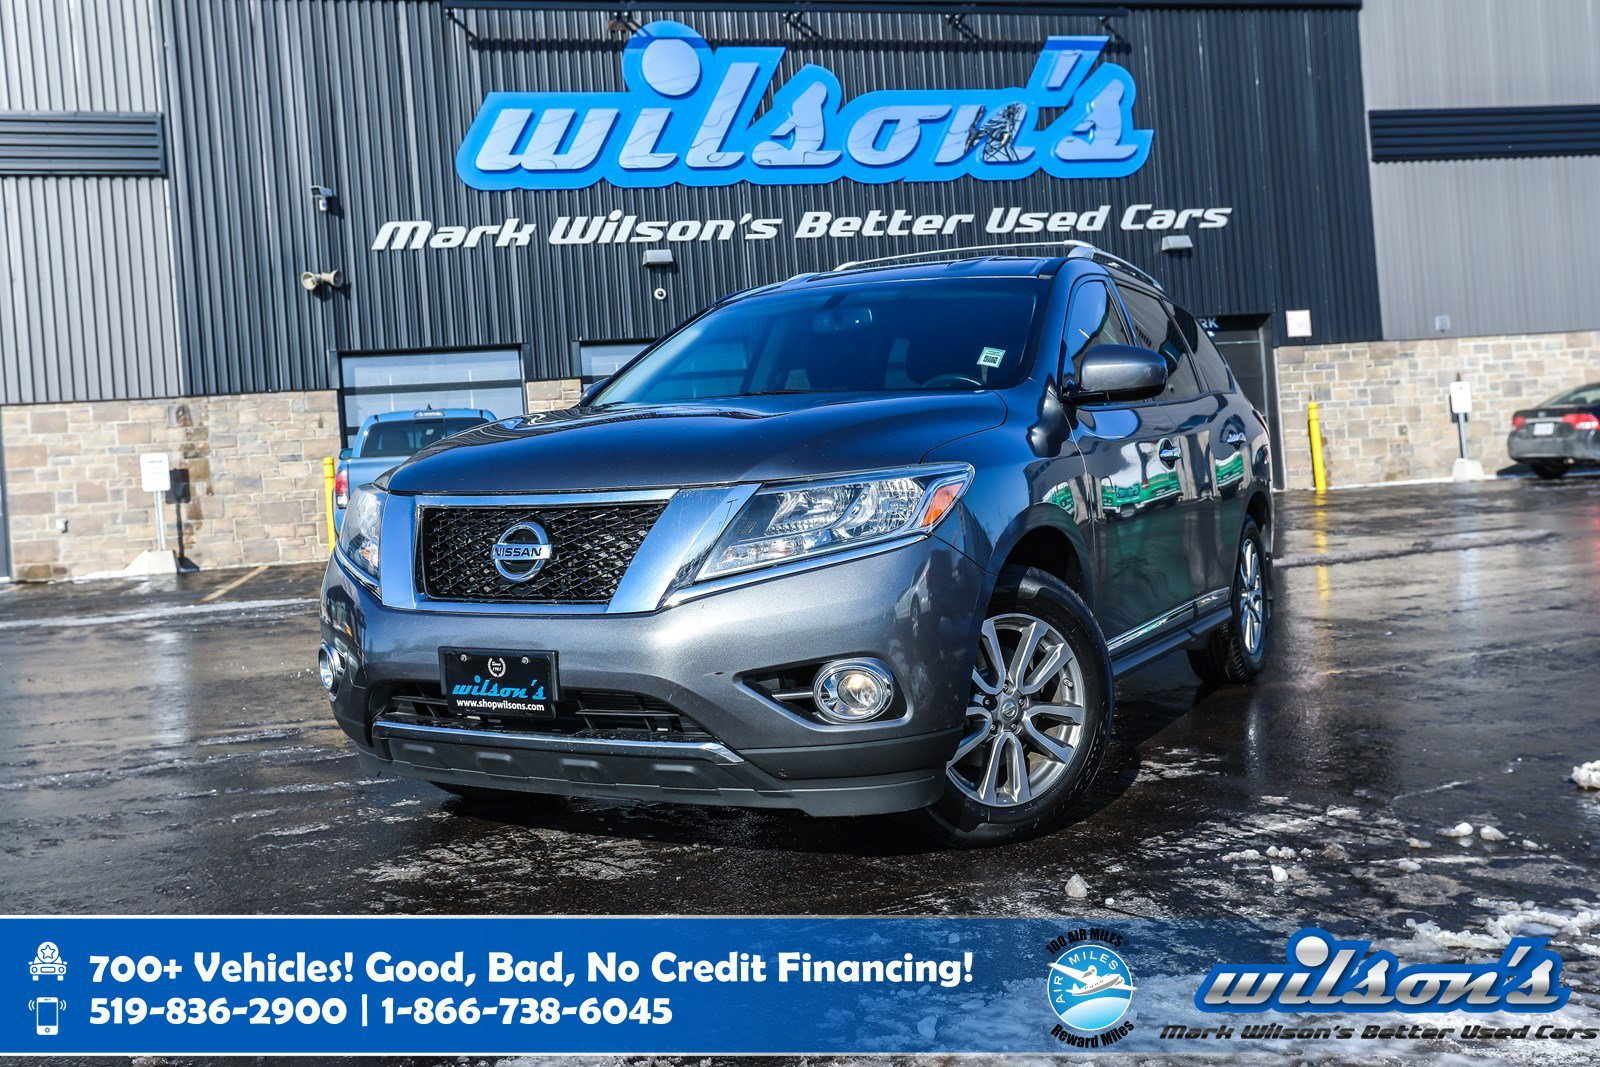 Certified Pre-Owned 2015 Nissan Pathfinder SL 4WD, Leather, Heated Steering, New Tires, Blindpot Alert, Remote Start, Bluetooth and more!